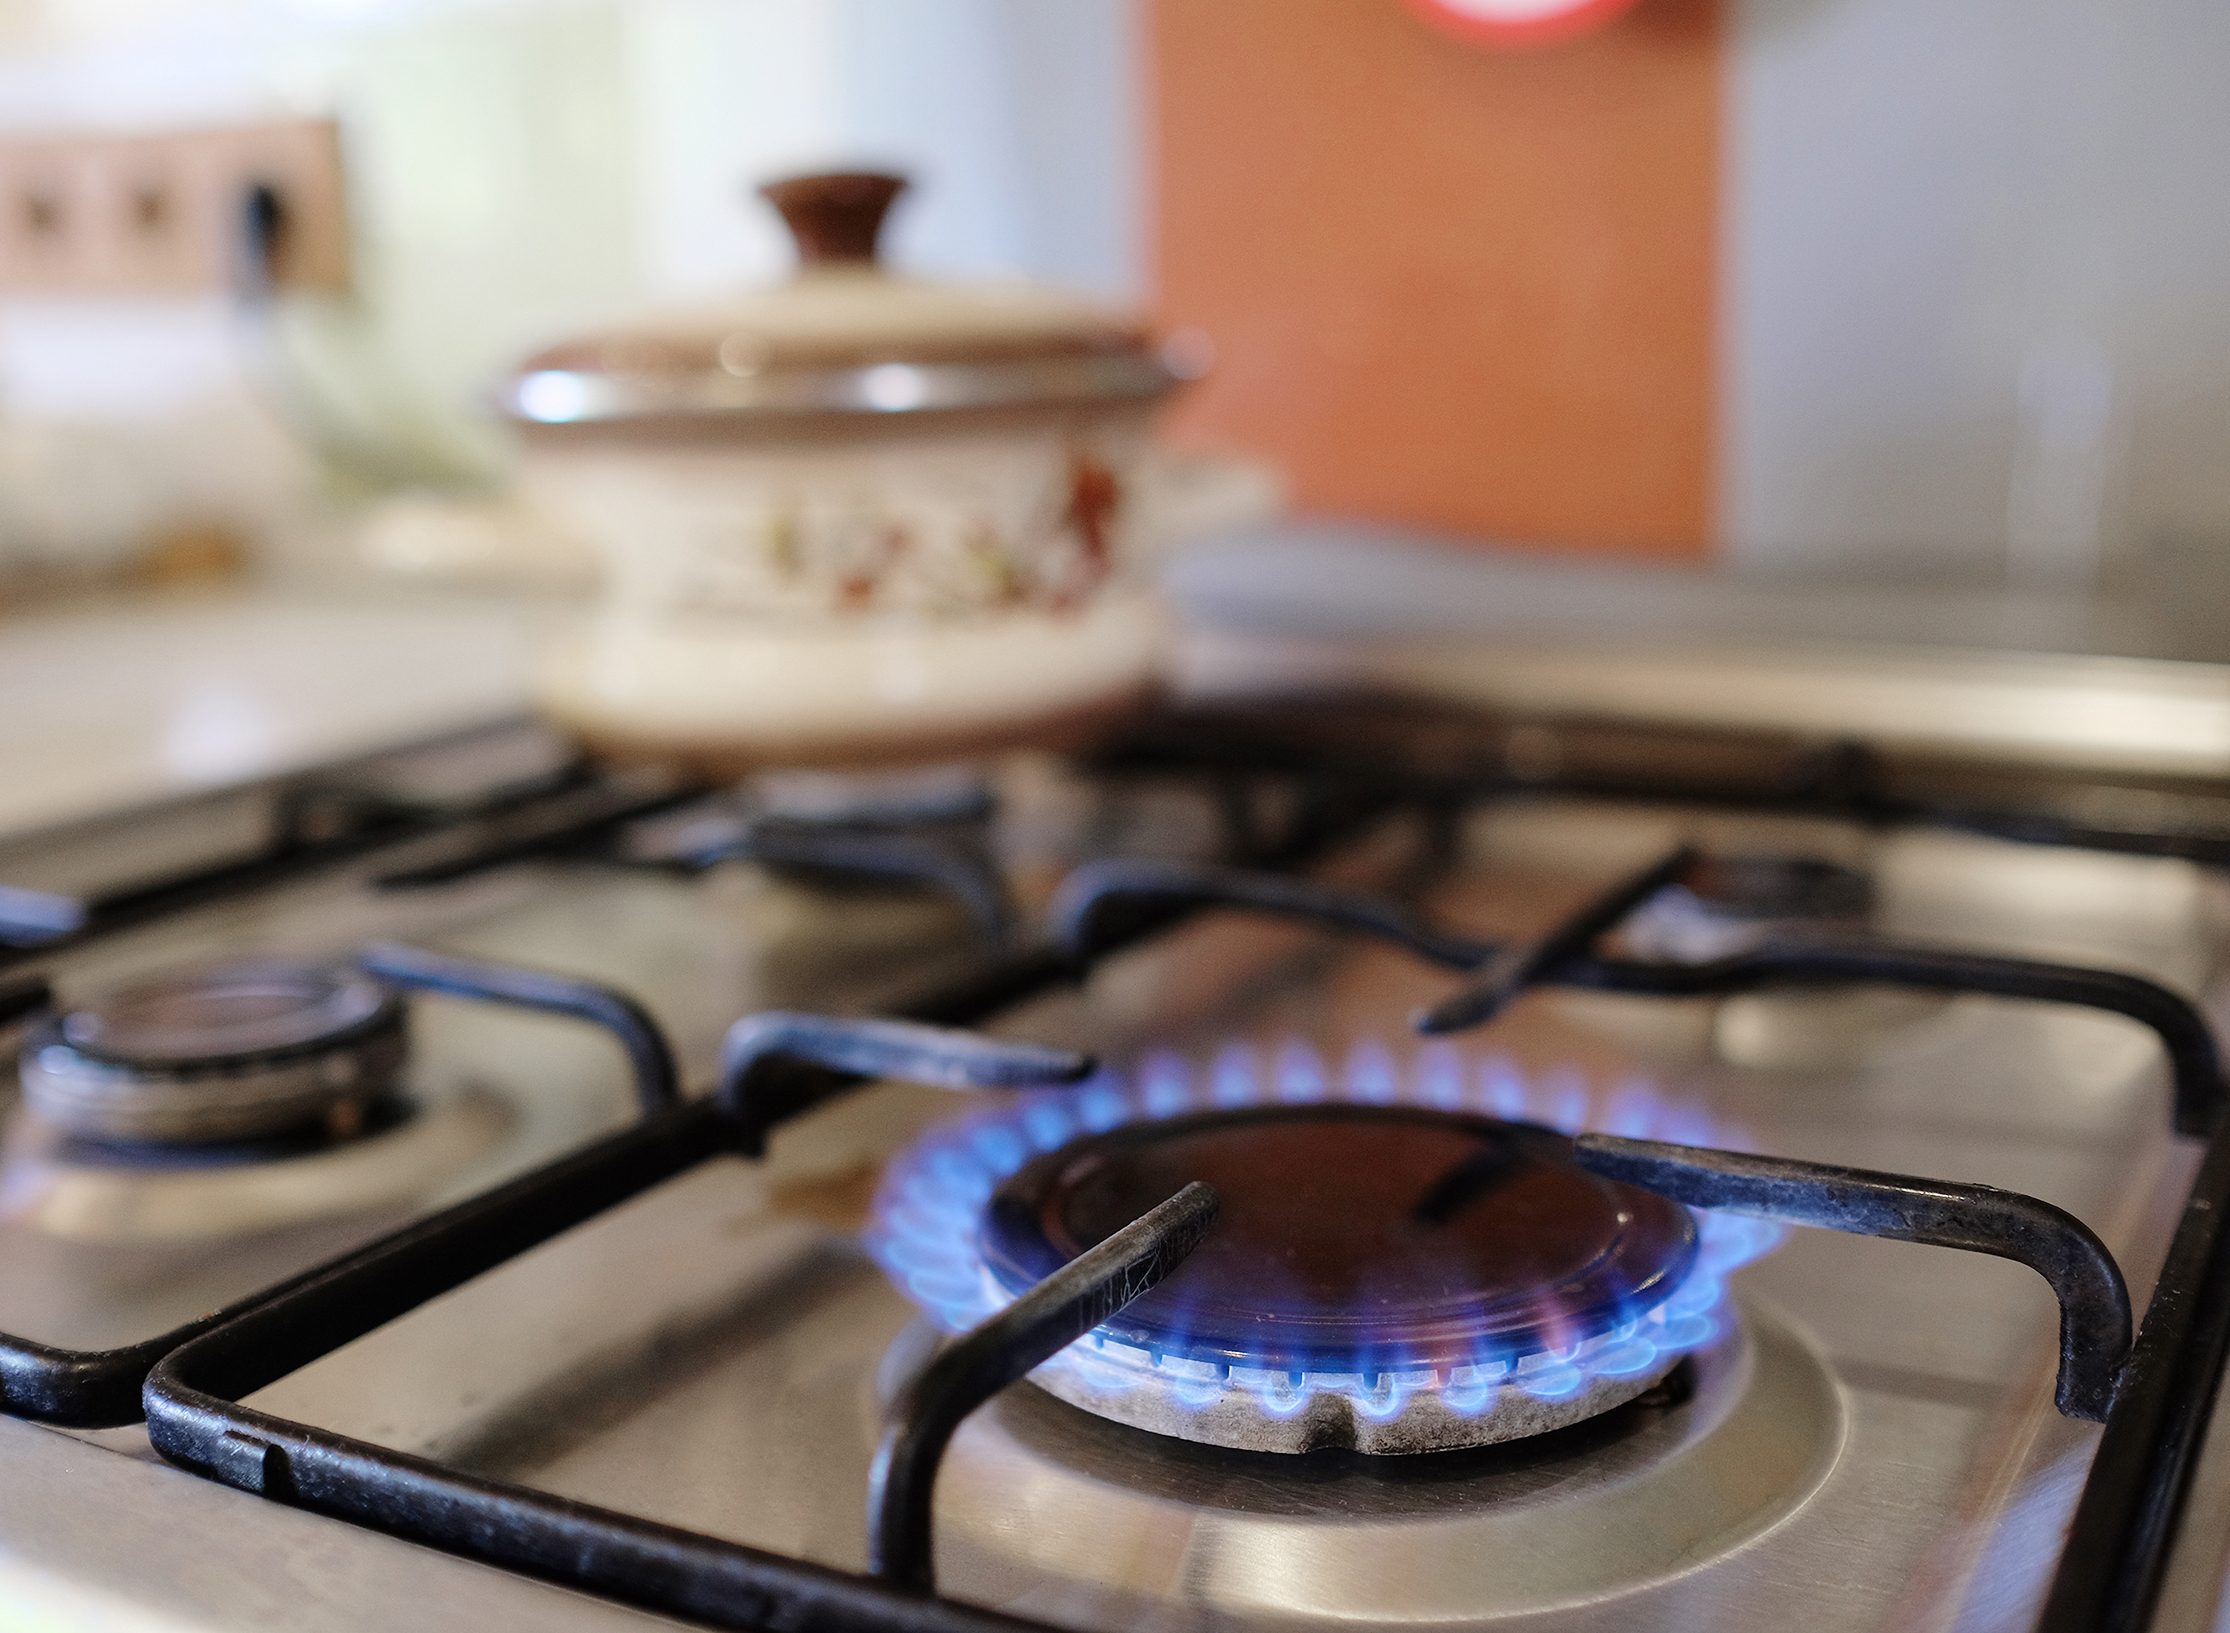 stove with gas burners